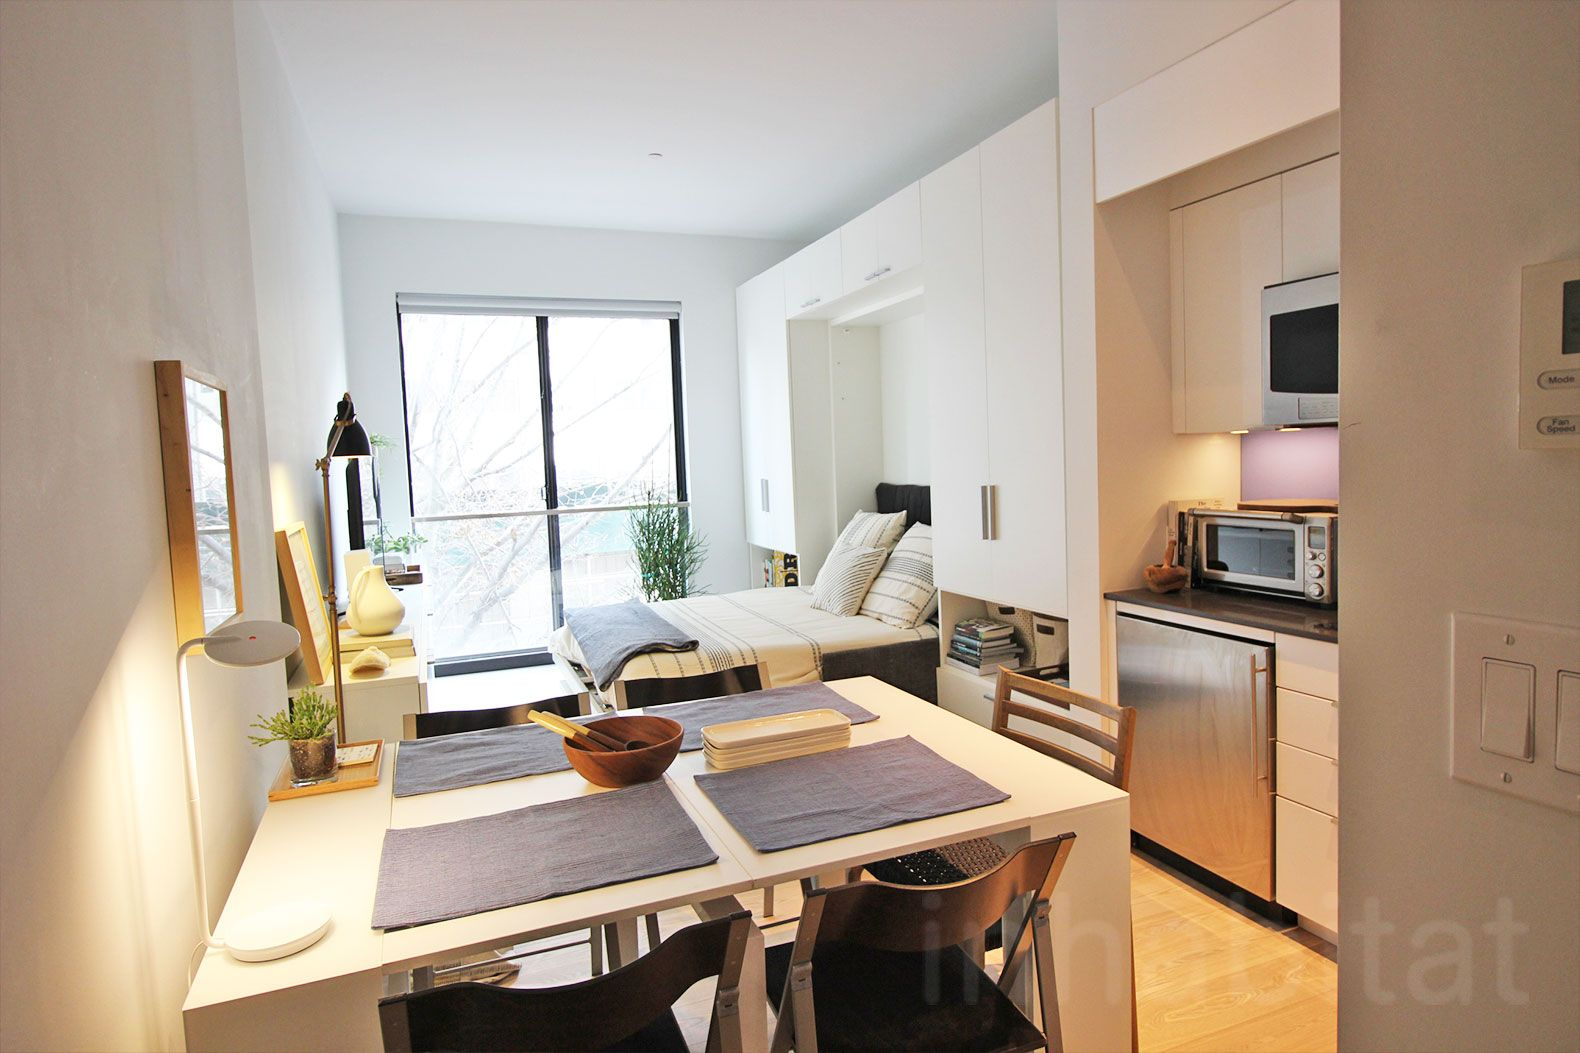 Video Nyc S First Micro Apartment Building Is Almost Ready To